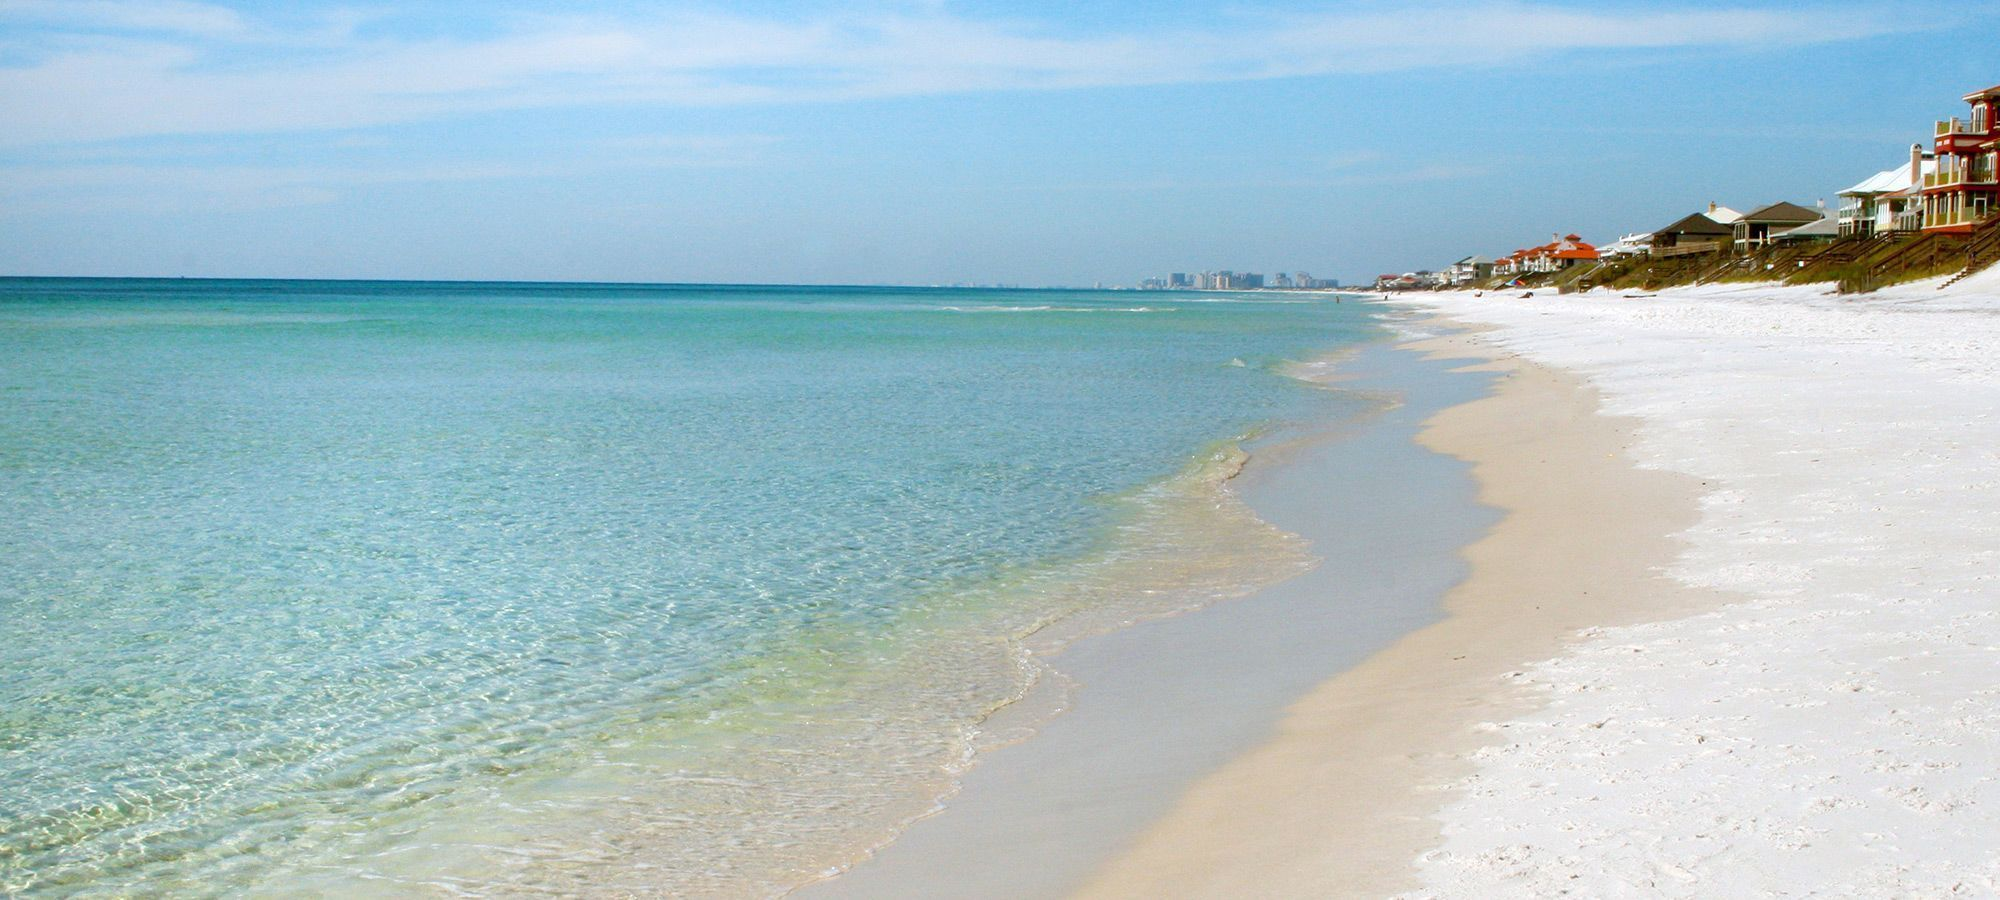 8 things to do on the beaches of south walton florida wanderlust rh pinterest com what to do at the beach on a date things to do at a beach vacation